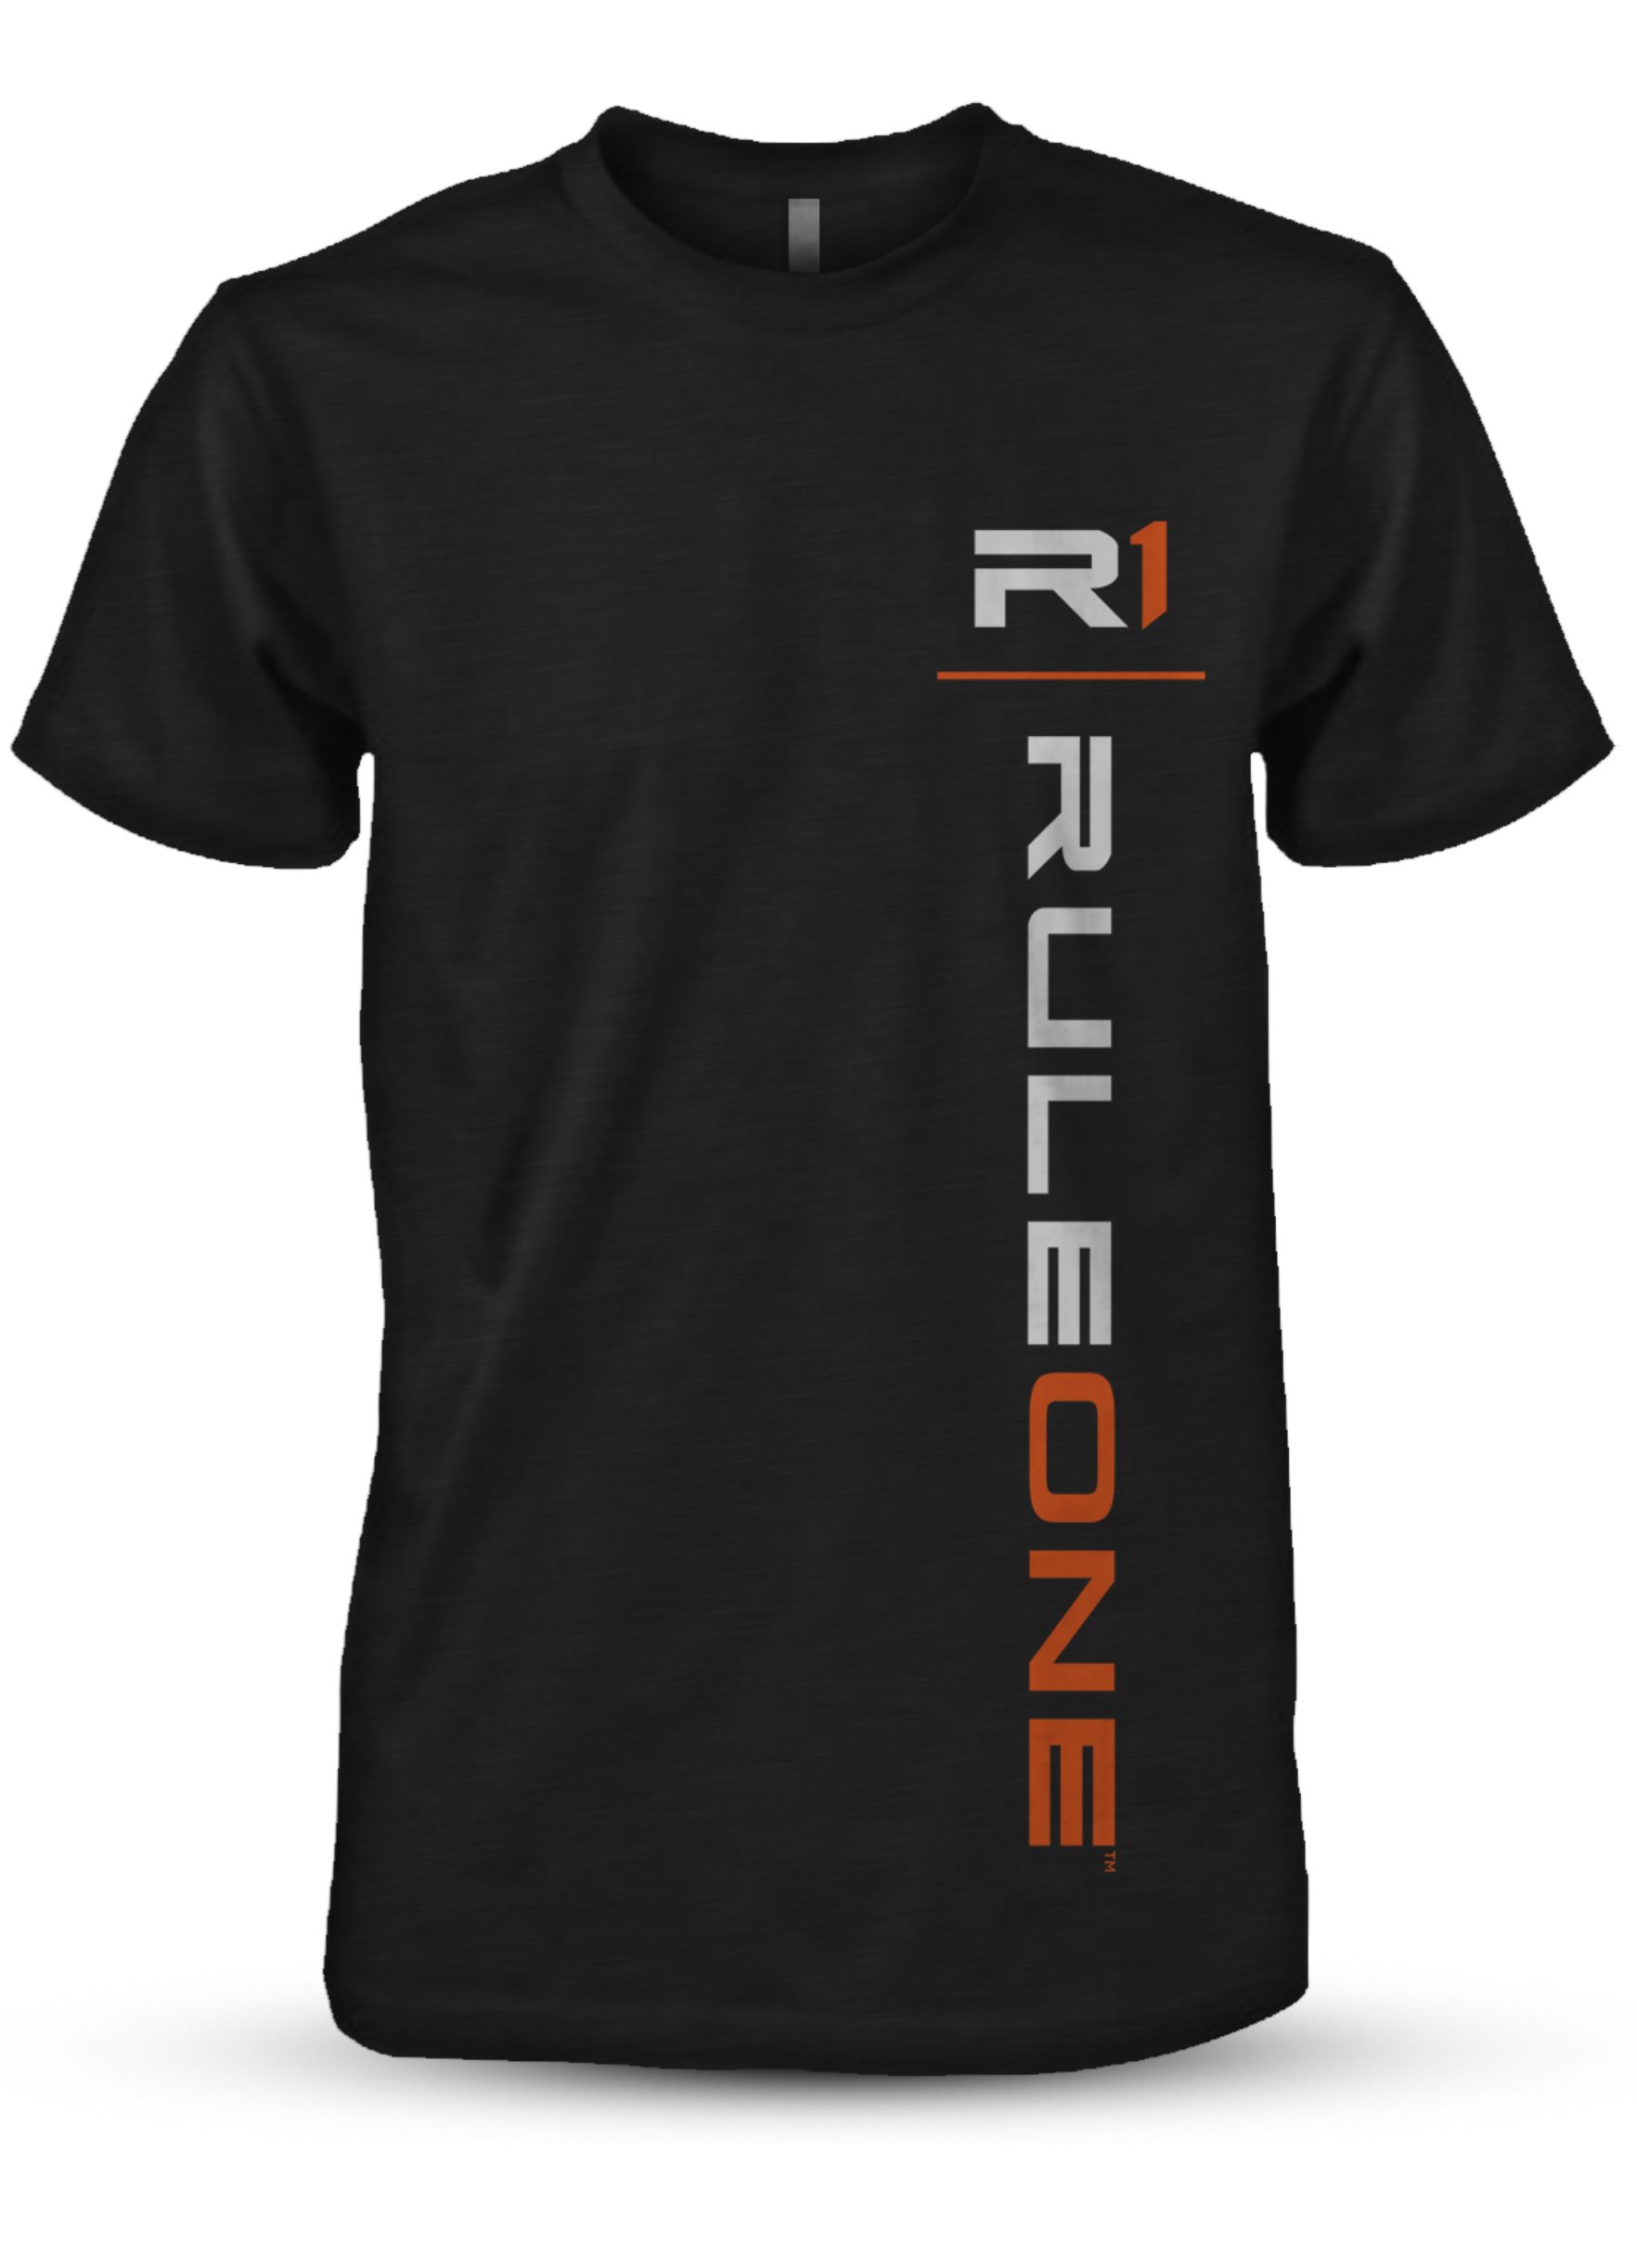 R1 Vertical + Website T-Shirt